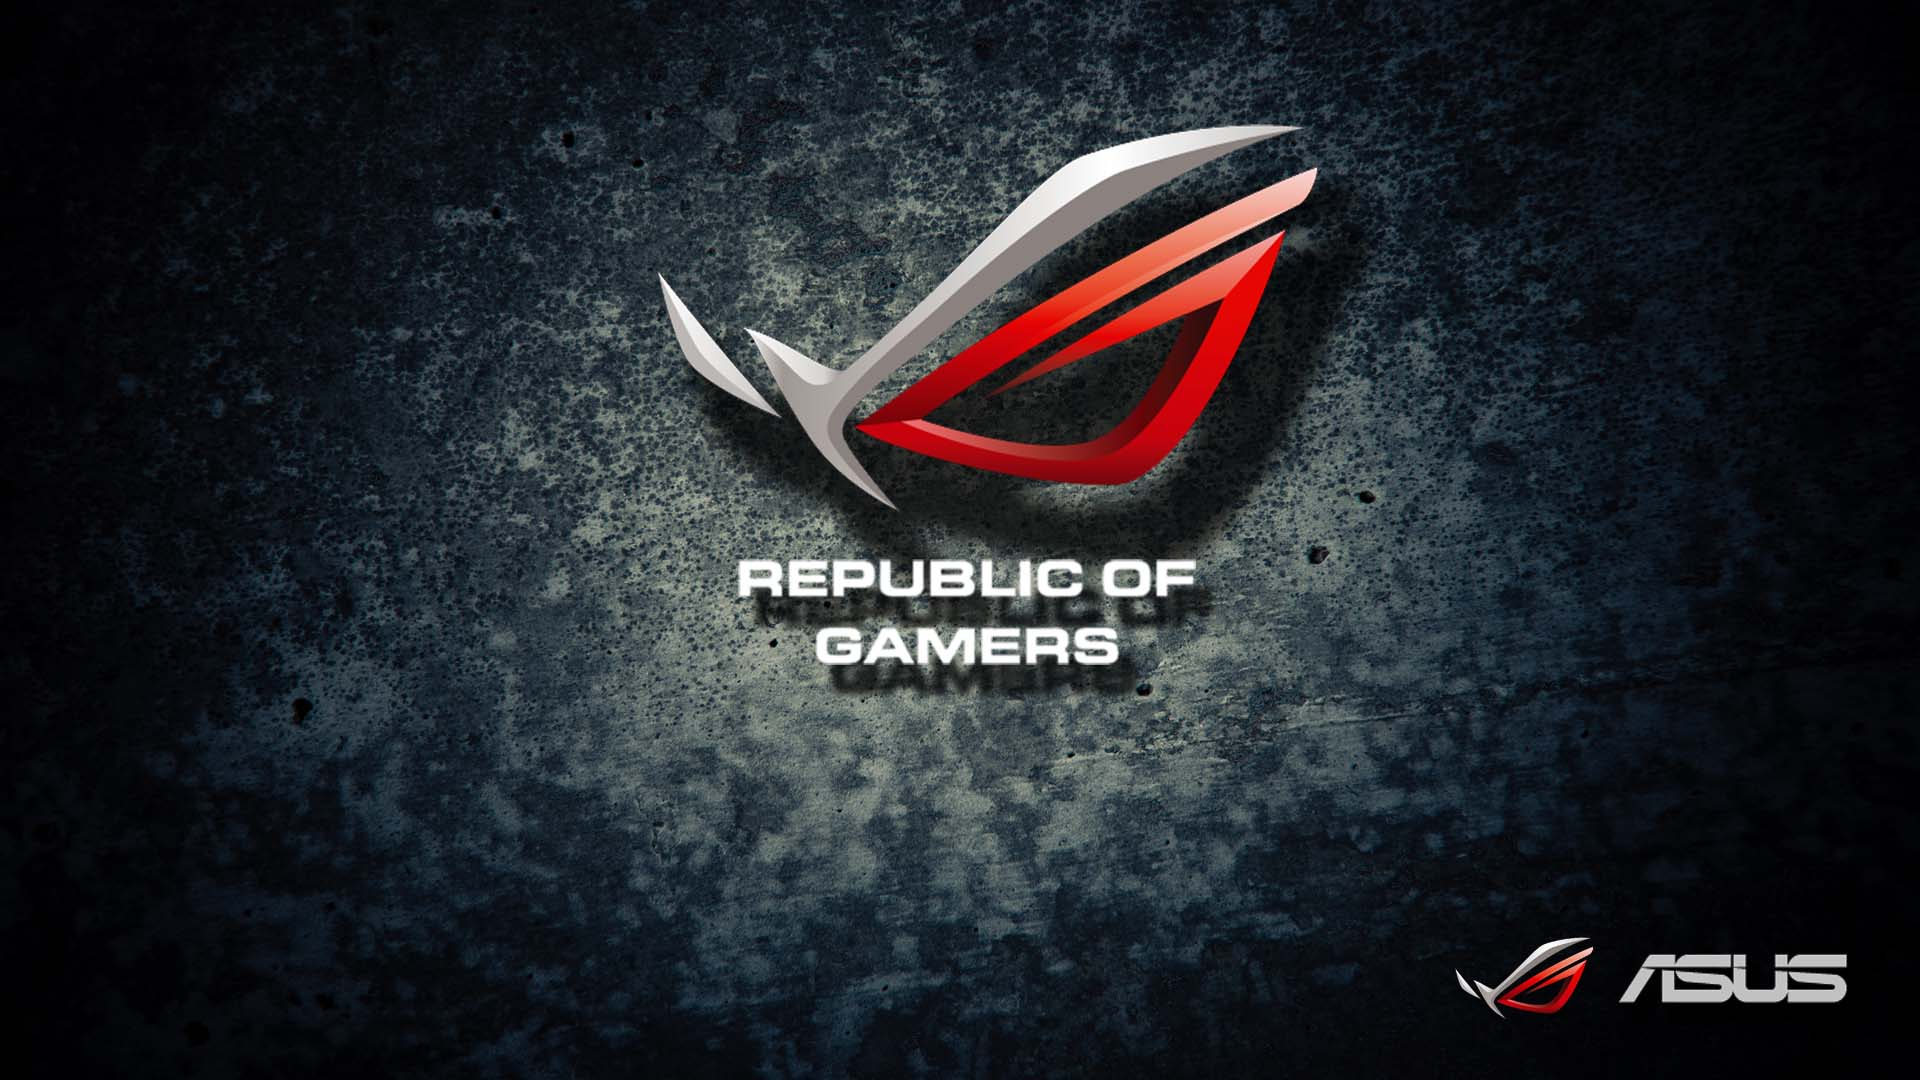 ASUS Republic Of Gamers HD Wallpaper for Desktop 1920x1080